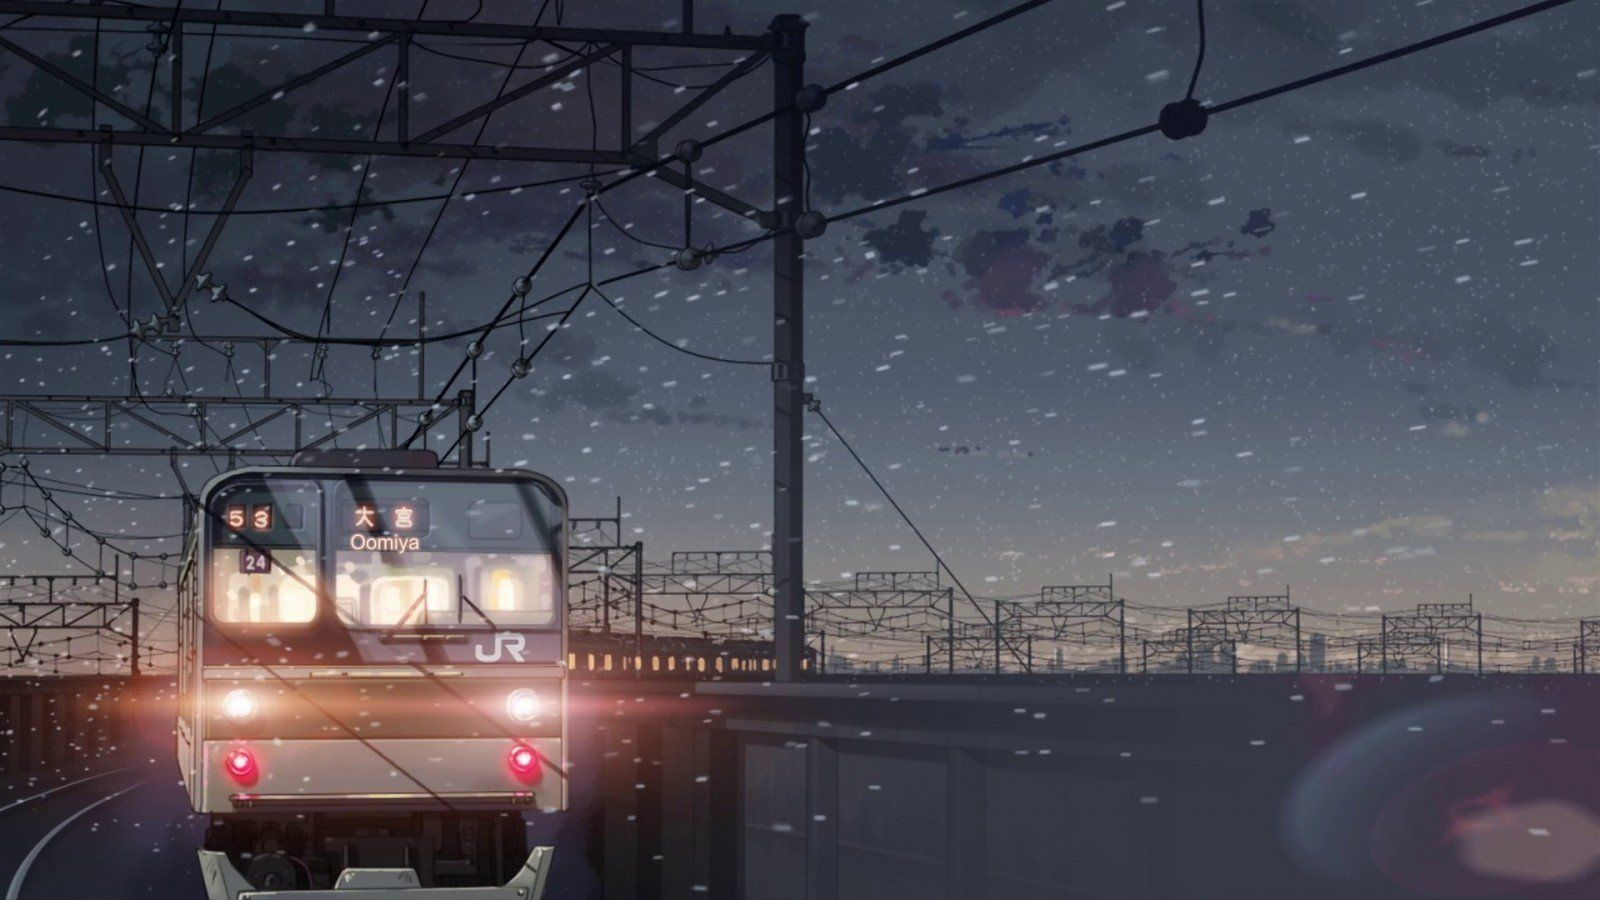 Irene Db On Twitter Anime Background Anime Scenery Episode Backgrounds Hd wallpaper night snow city train